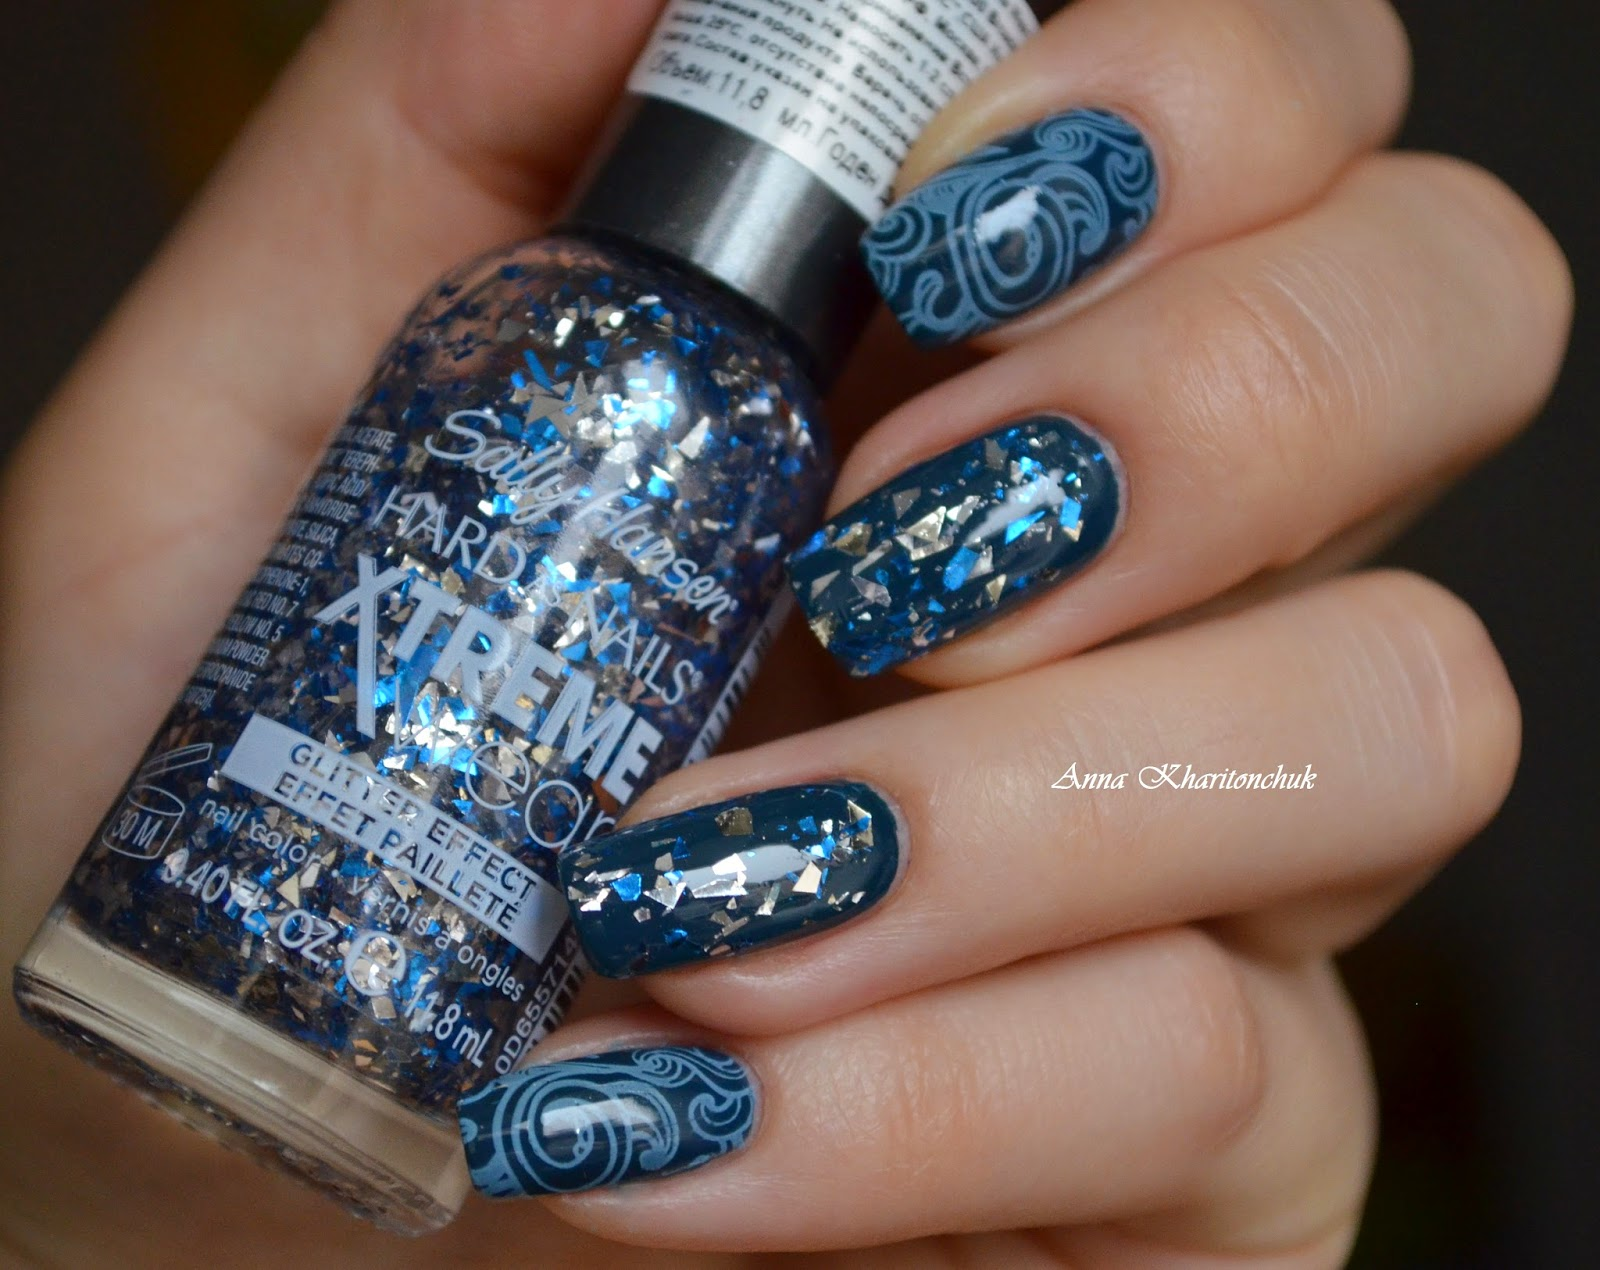 China Glaze Well Trained, Sally Hansen Hard as Nails Xtreme Wear Glitter Effect # 970 Family Jewels стемпинг BP-28 и краска для стемпинга Enas